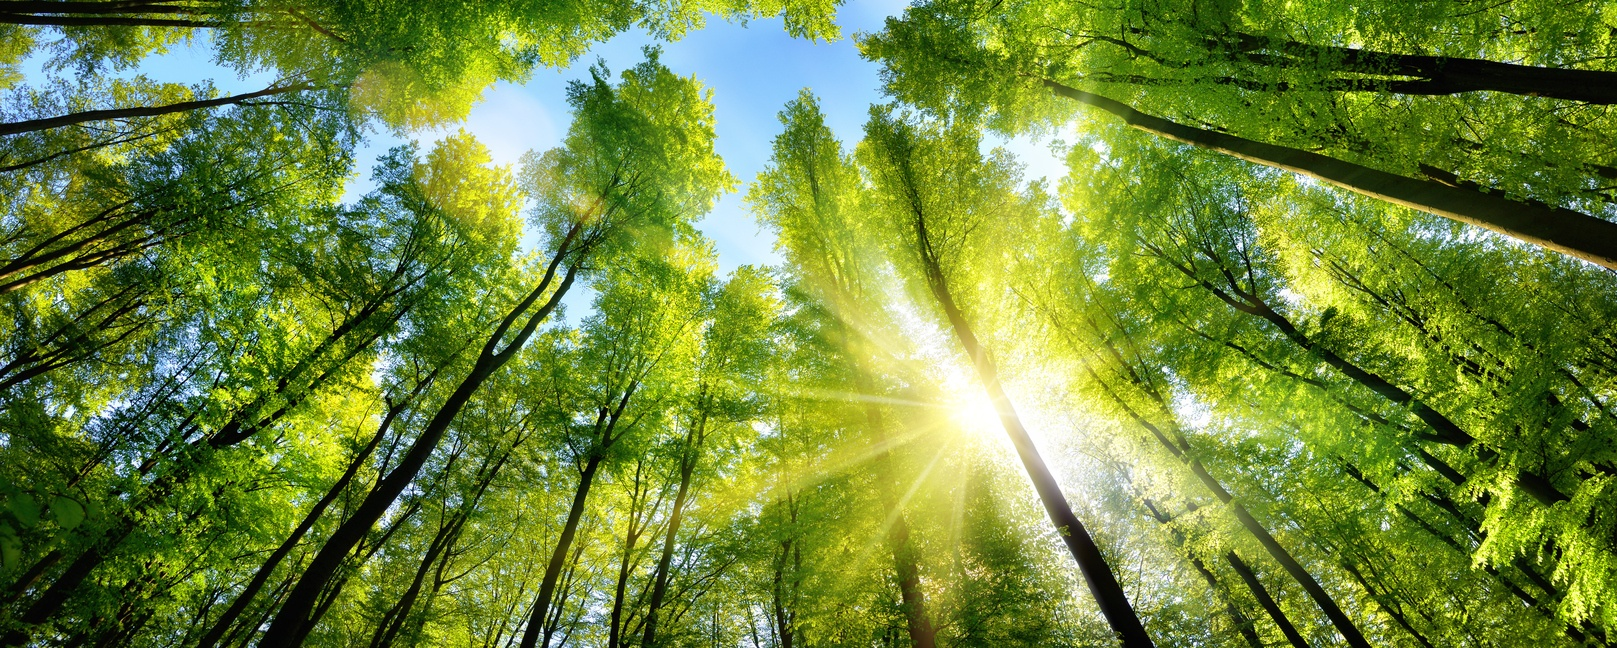 Enchanting-sunshine-on-green-treetops-598057526_1621x650 (1)